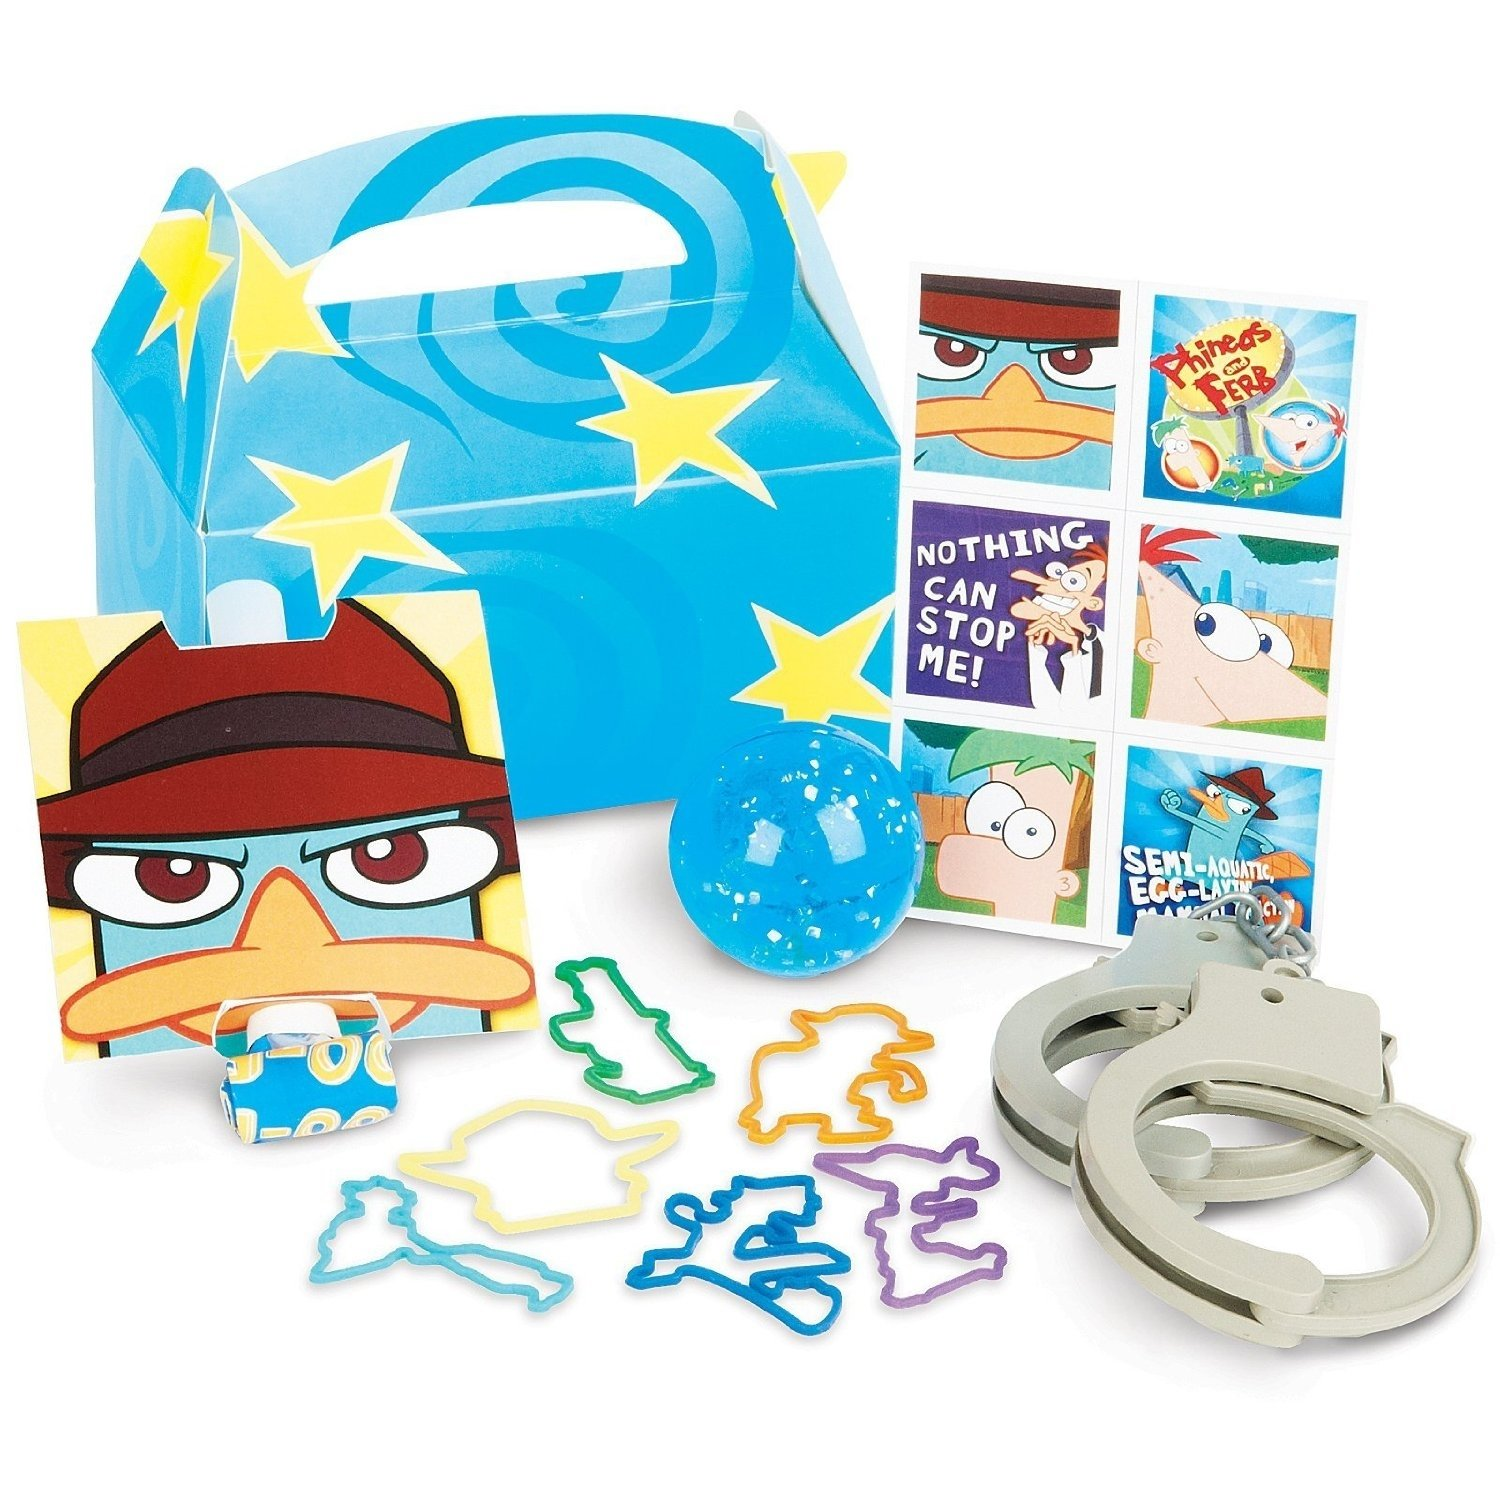 10 Most Popular Phineas And Ferb Party Ideas phineas and ferb birthday favors party ideas pinterest favours 2020